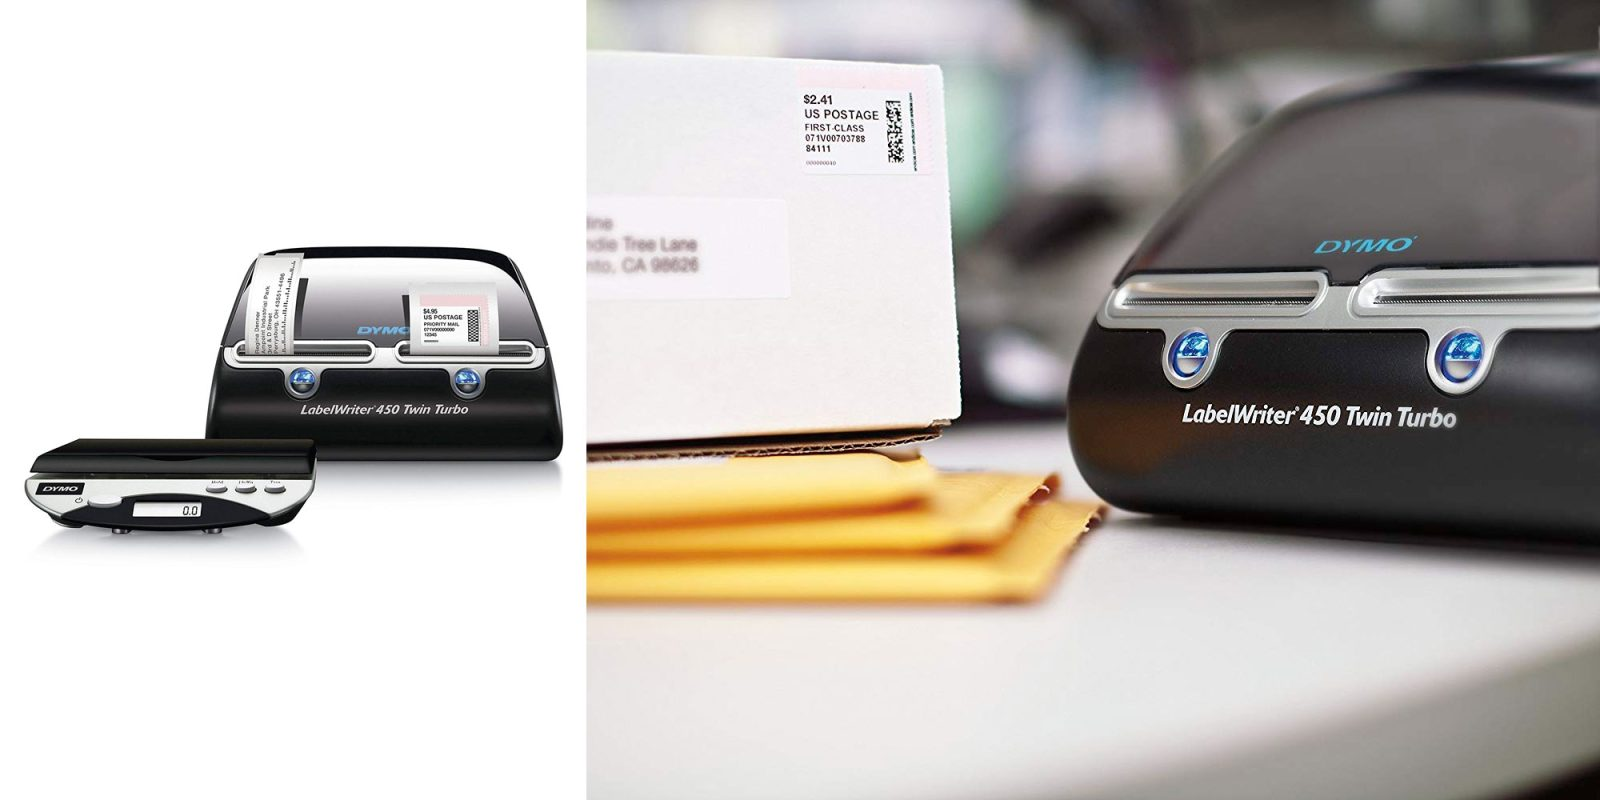 DYMO's Desktop Mailing Solution kit w/ scale helps you ship anything: $163 (Reg. $200+)